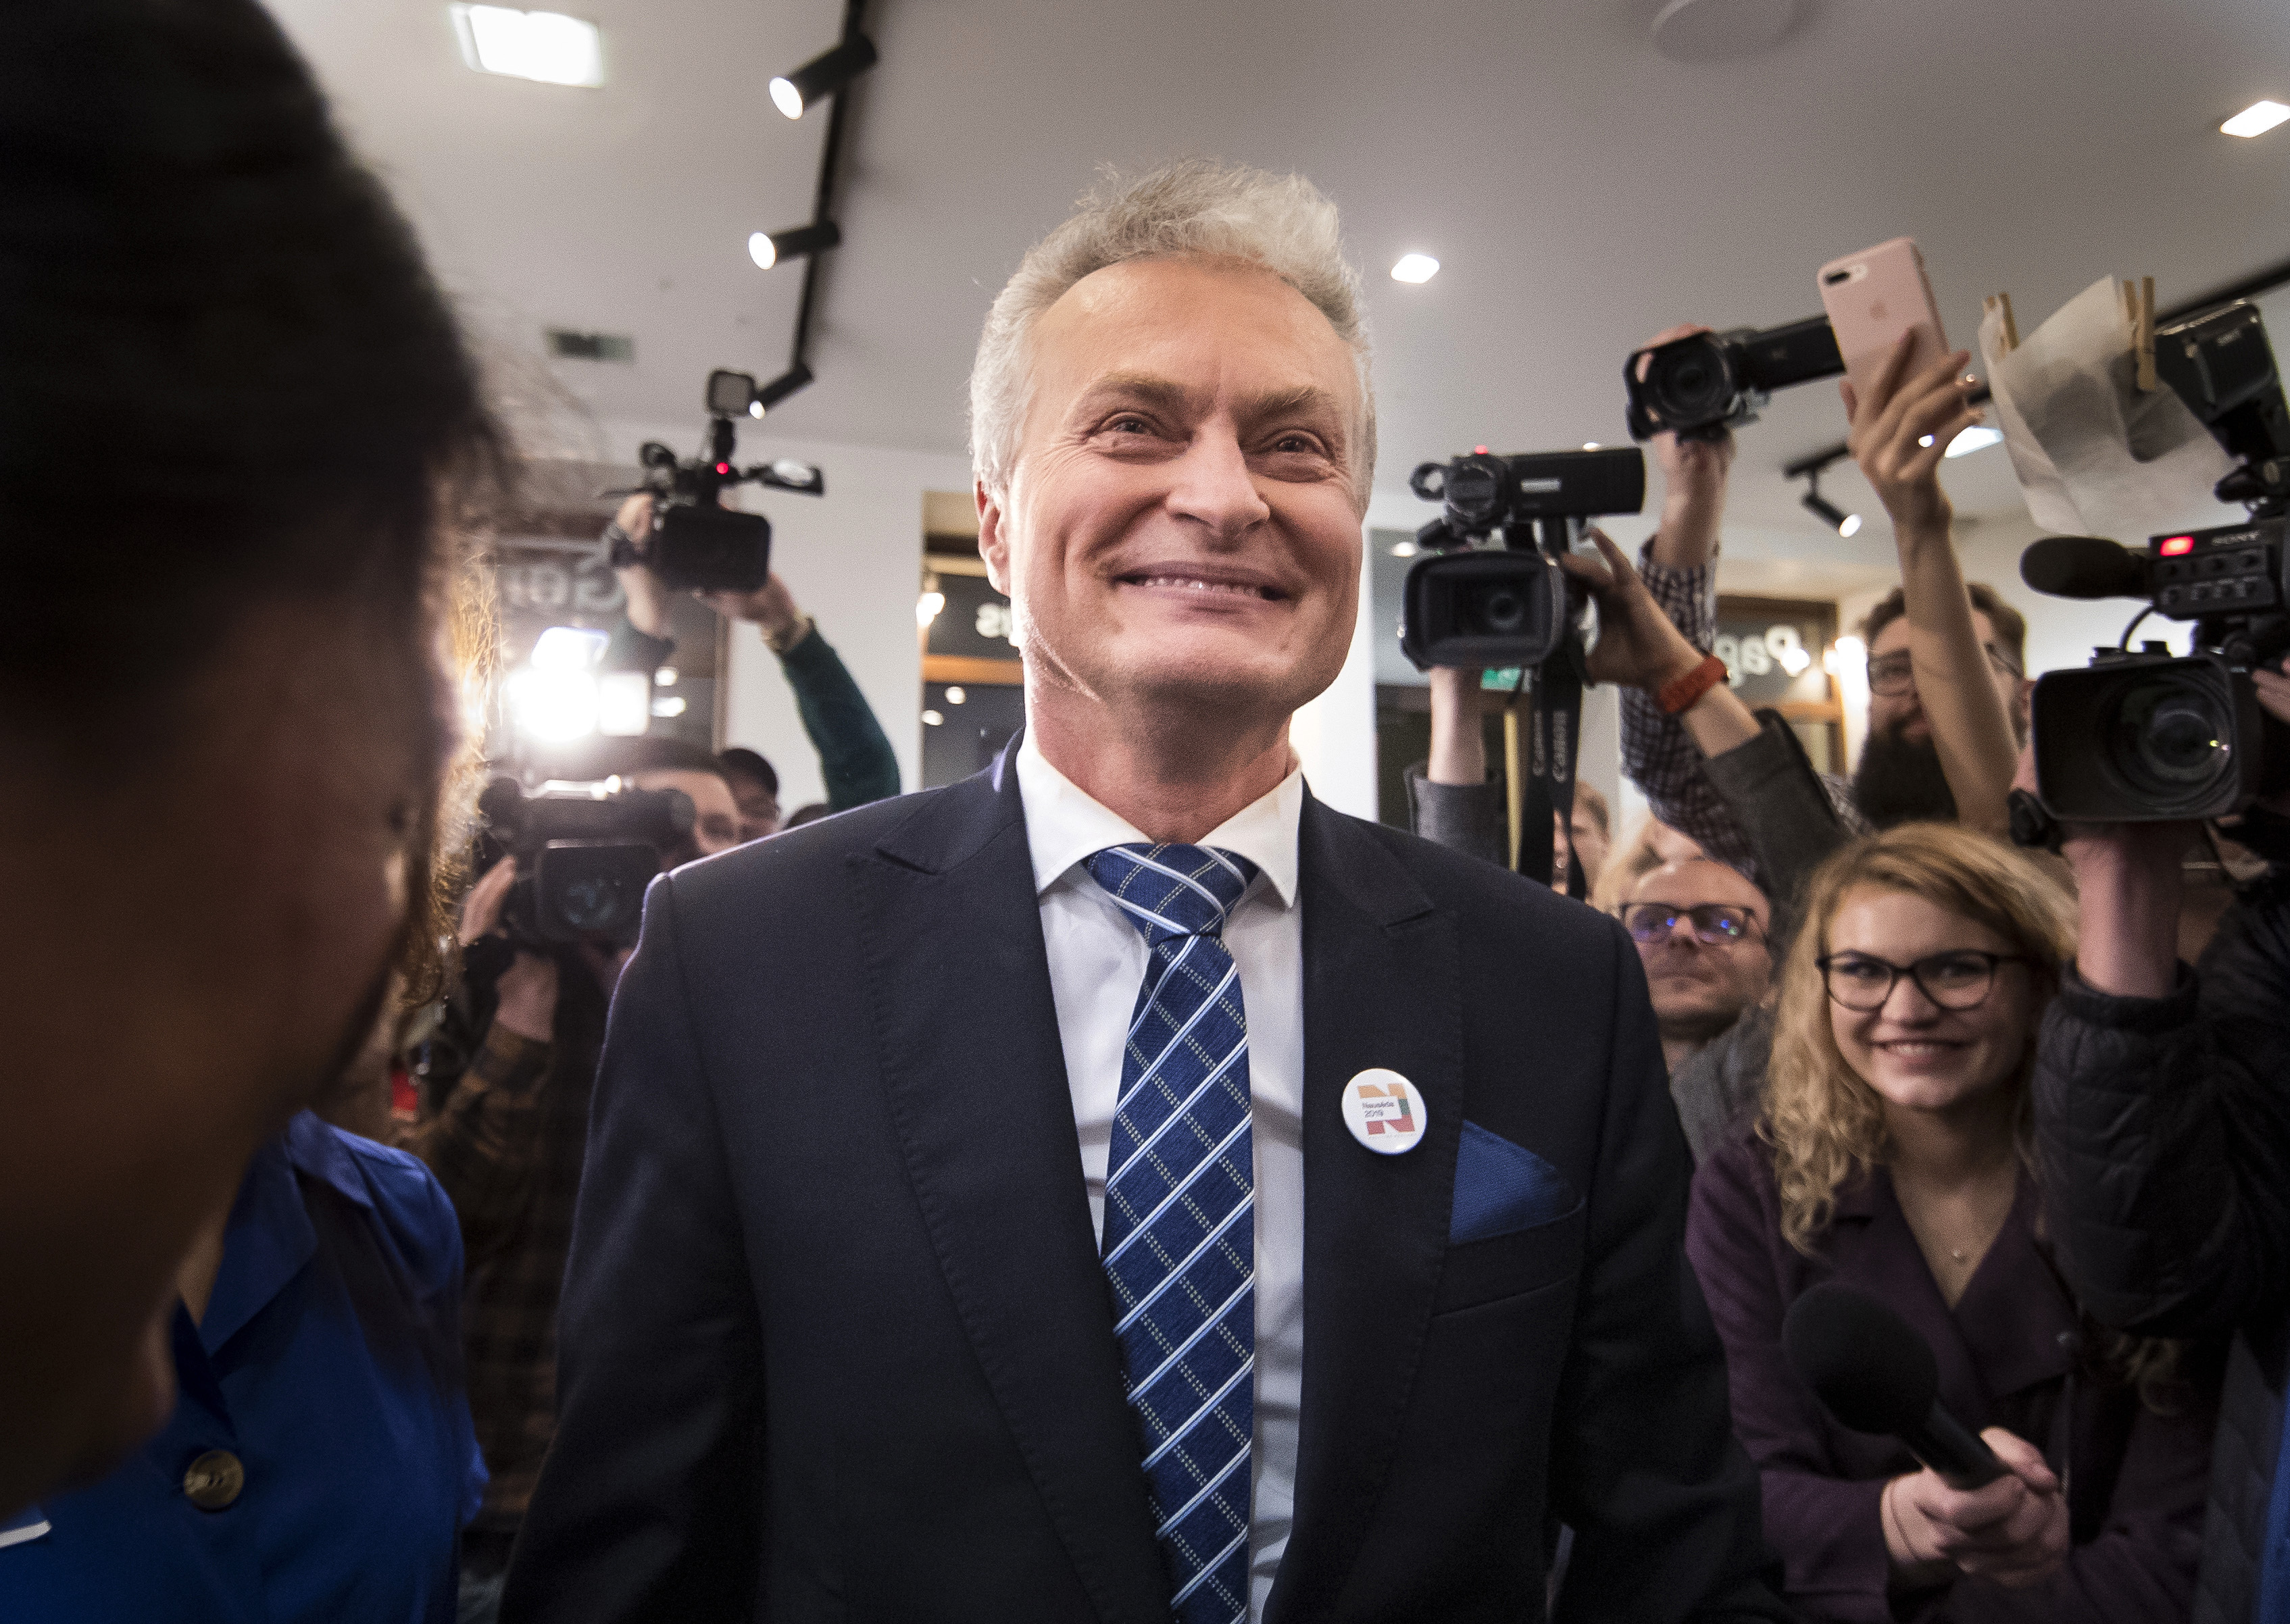 Economist Gitanas Nauseda, a presidential candidate, celebrates winning the first round of Lithuania's presidential election in office in Vilnius, Lithuania, early Monday, May 13, 2019.